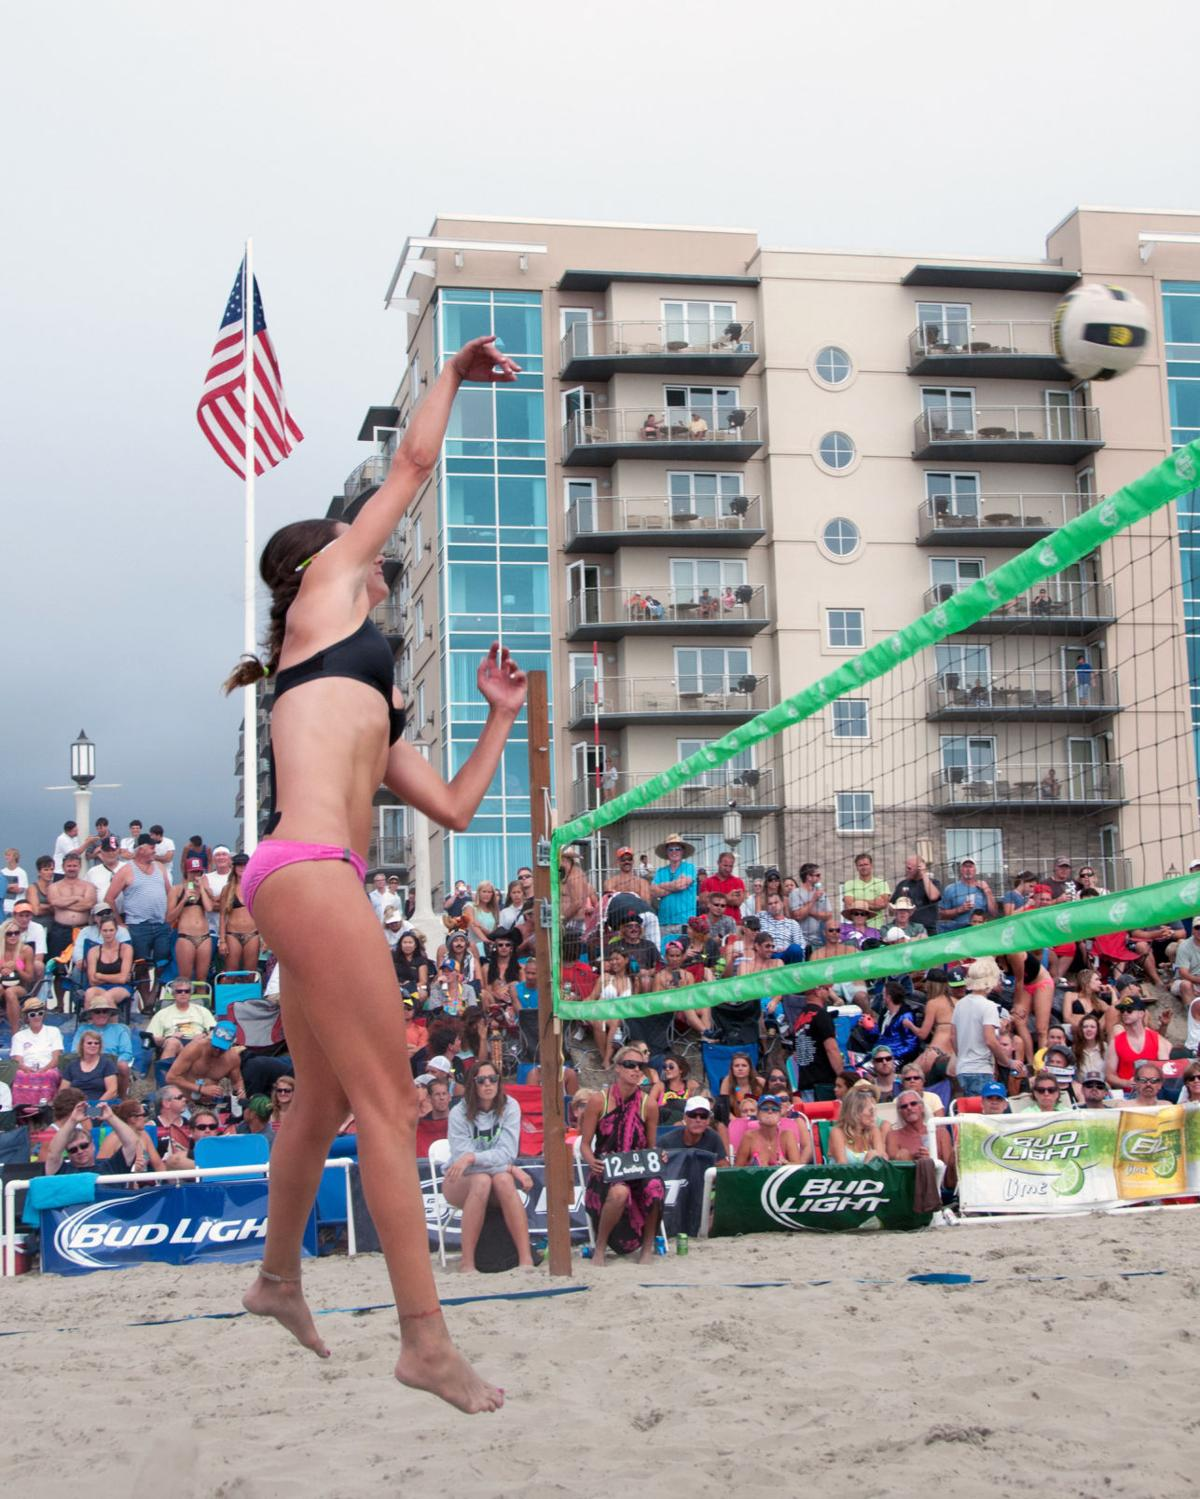 Seaside gears up for 'world's largest' beach volleyball event